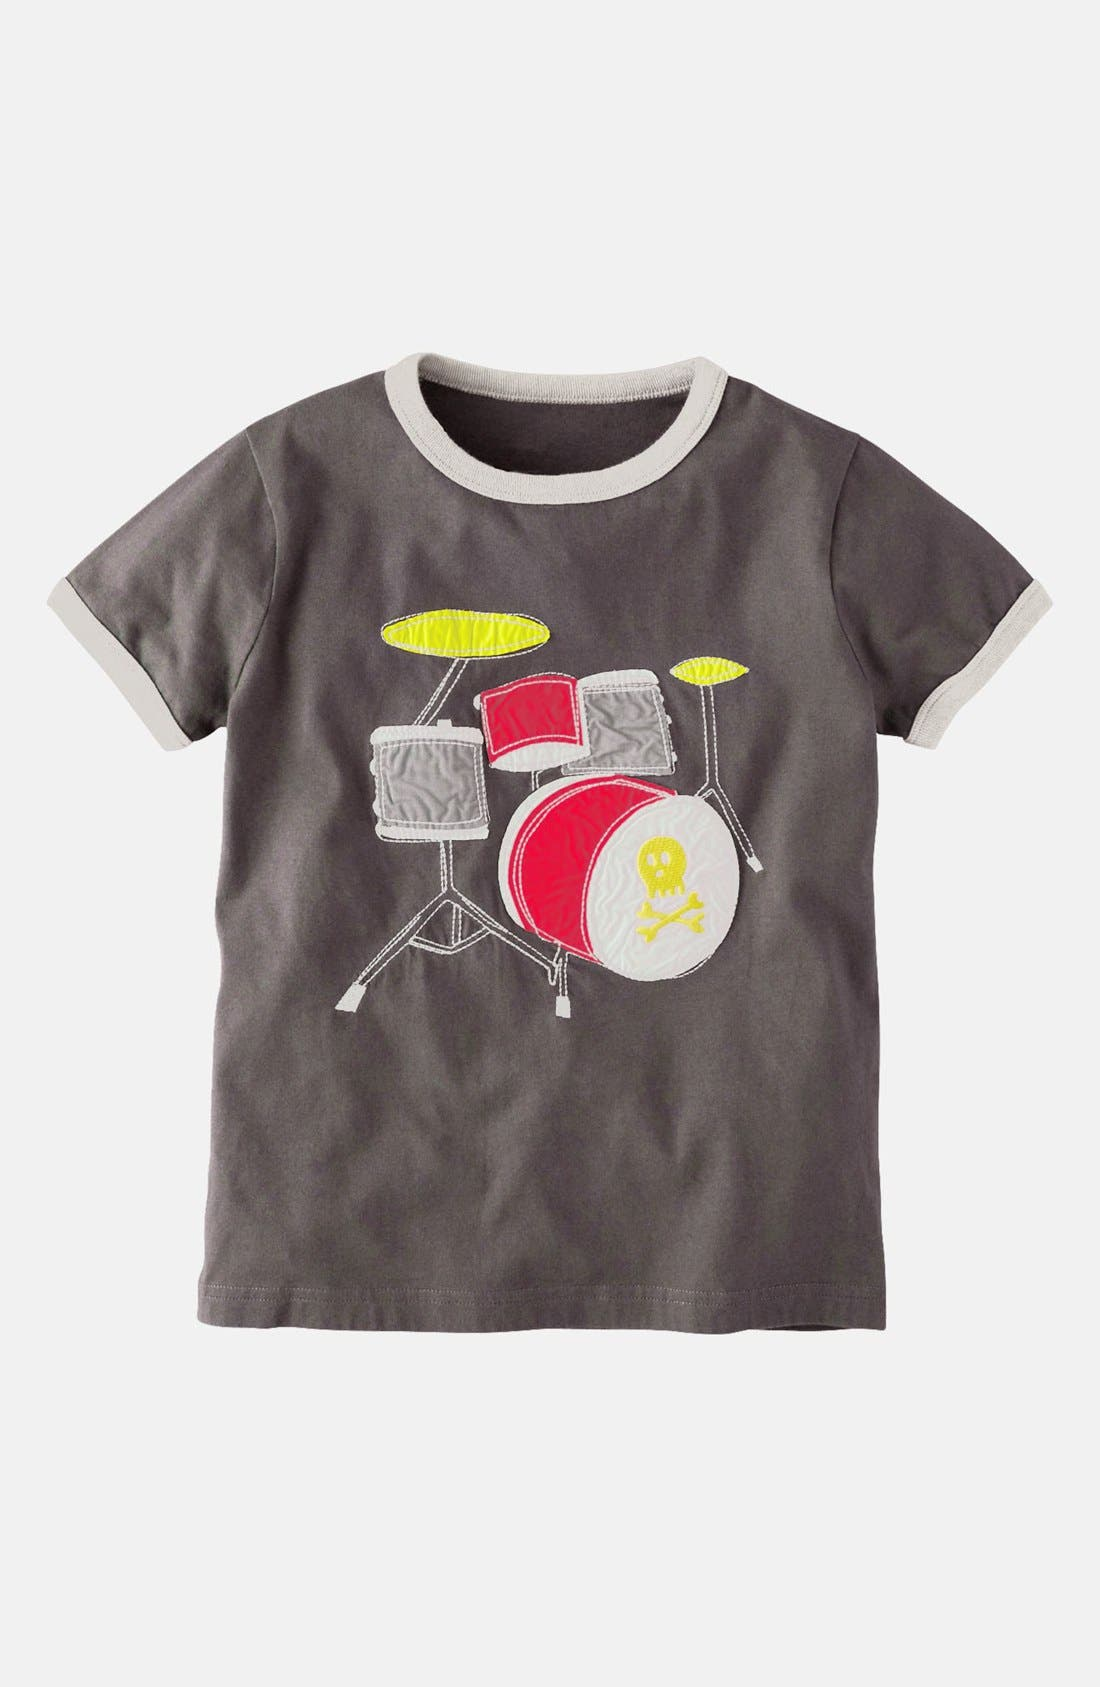 Alternate Image 1 Selected - Mini Boden 'Rock' T-Shirt (Toddler, Little Boys & Big Boys)